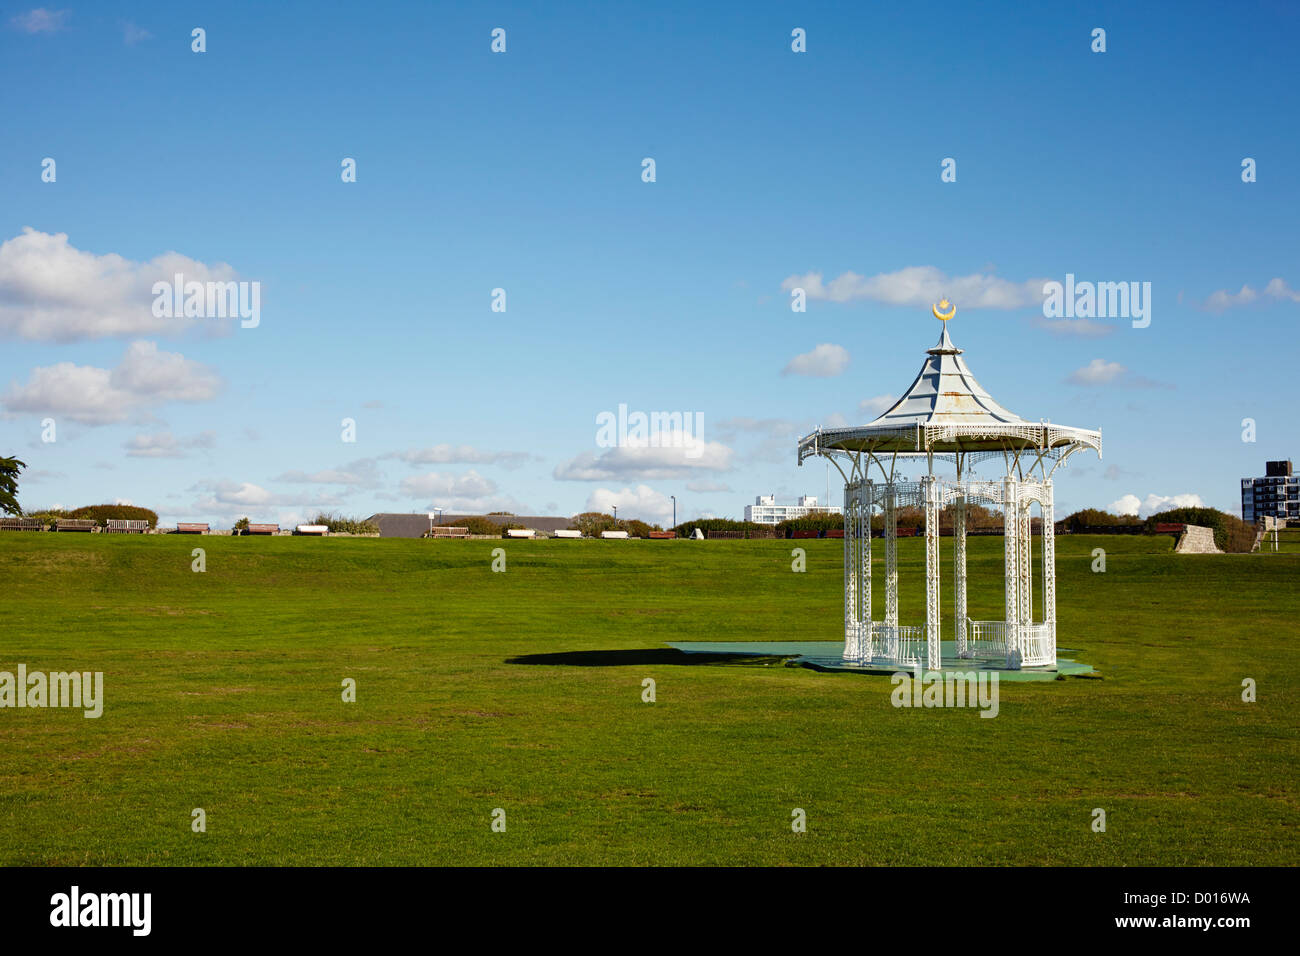 Bandstand at Southsea, Porstmouth, UK Stock Photo